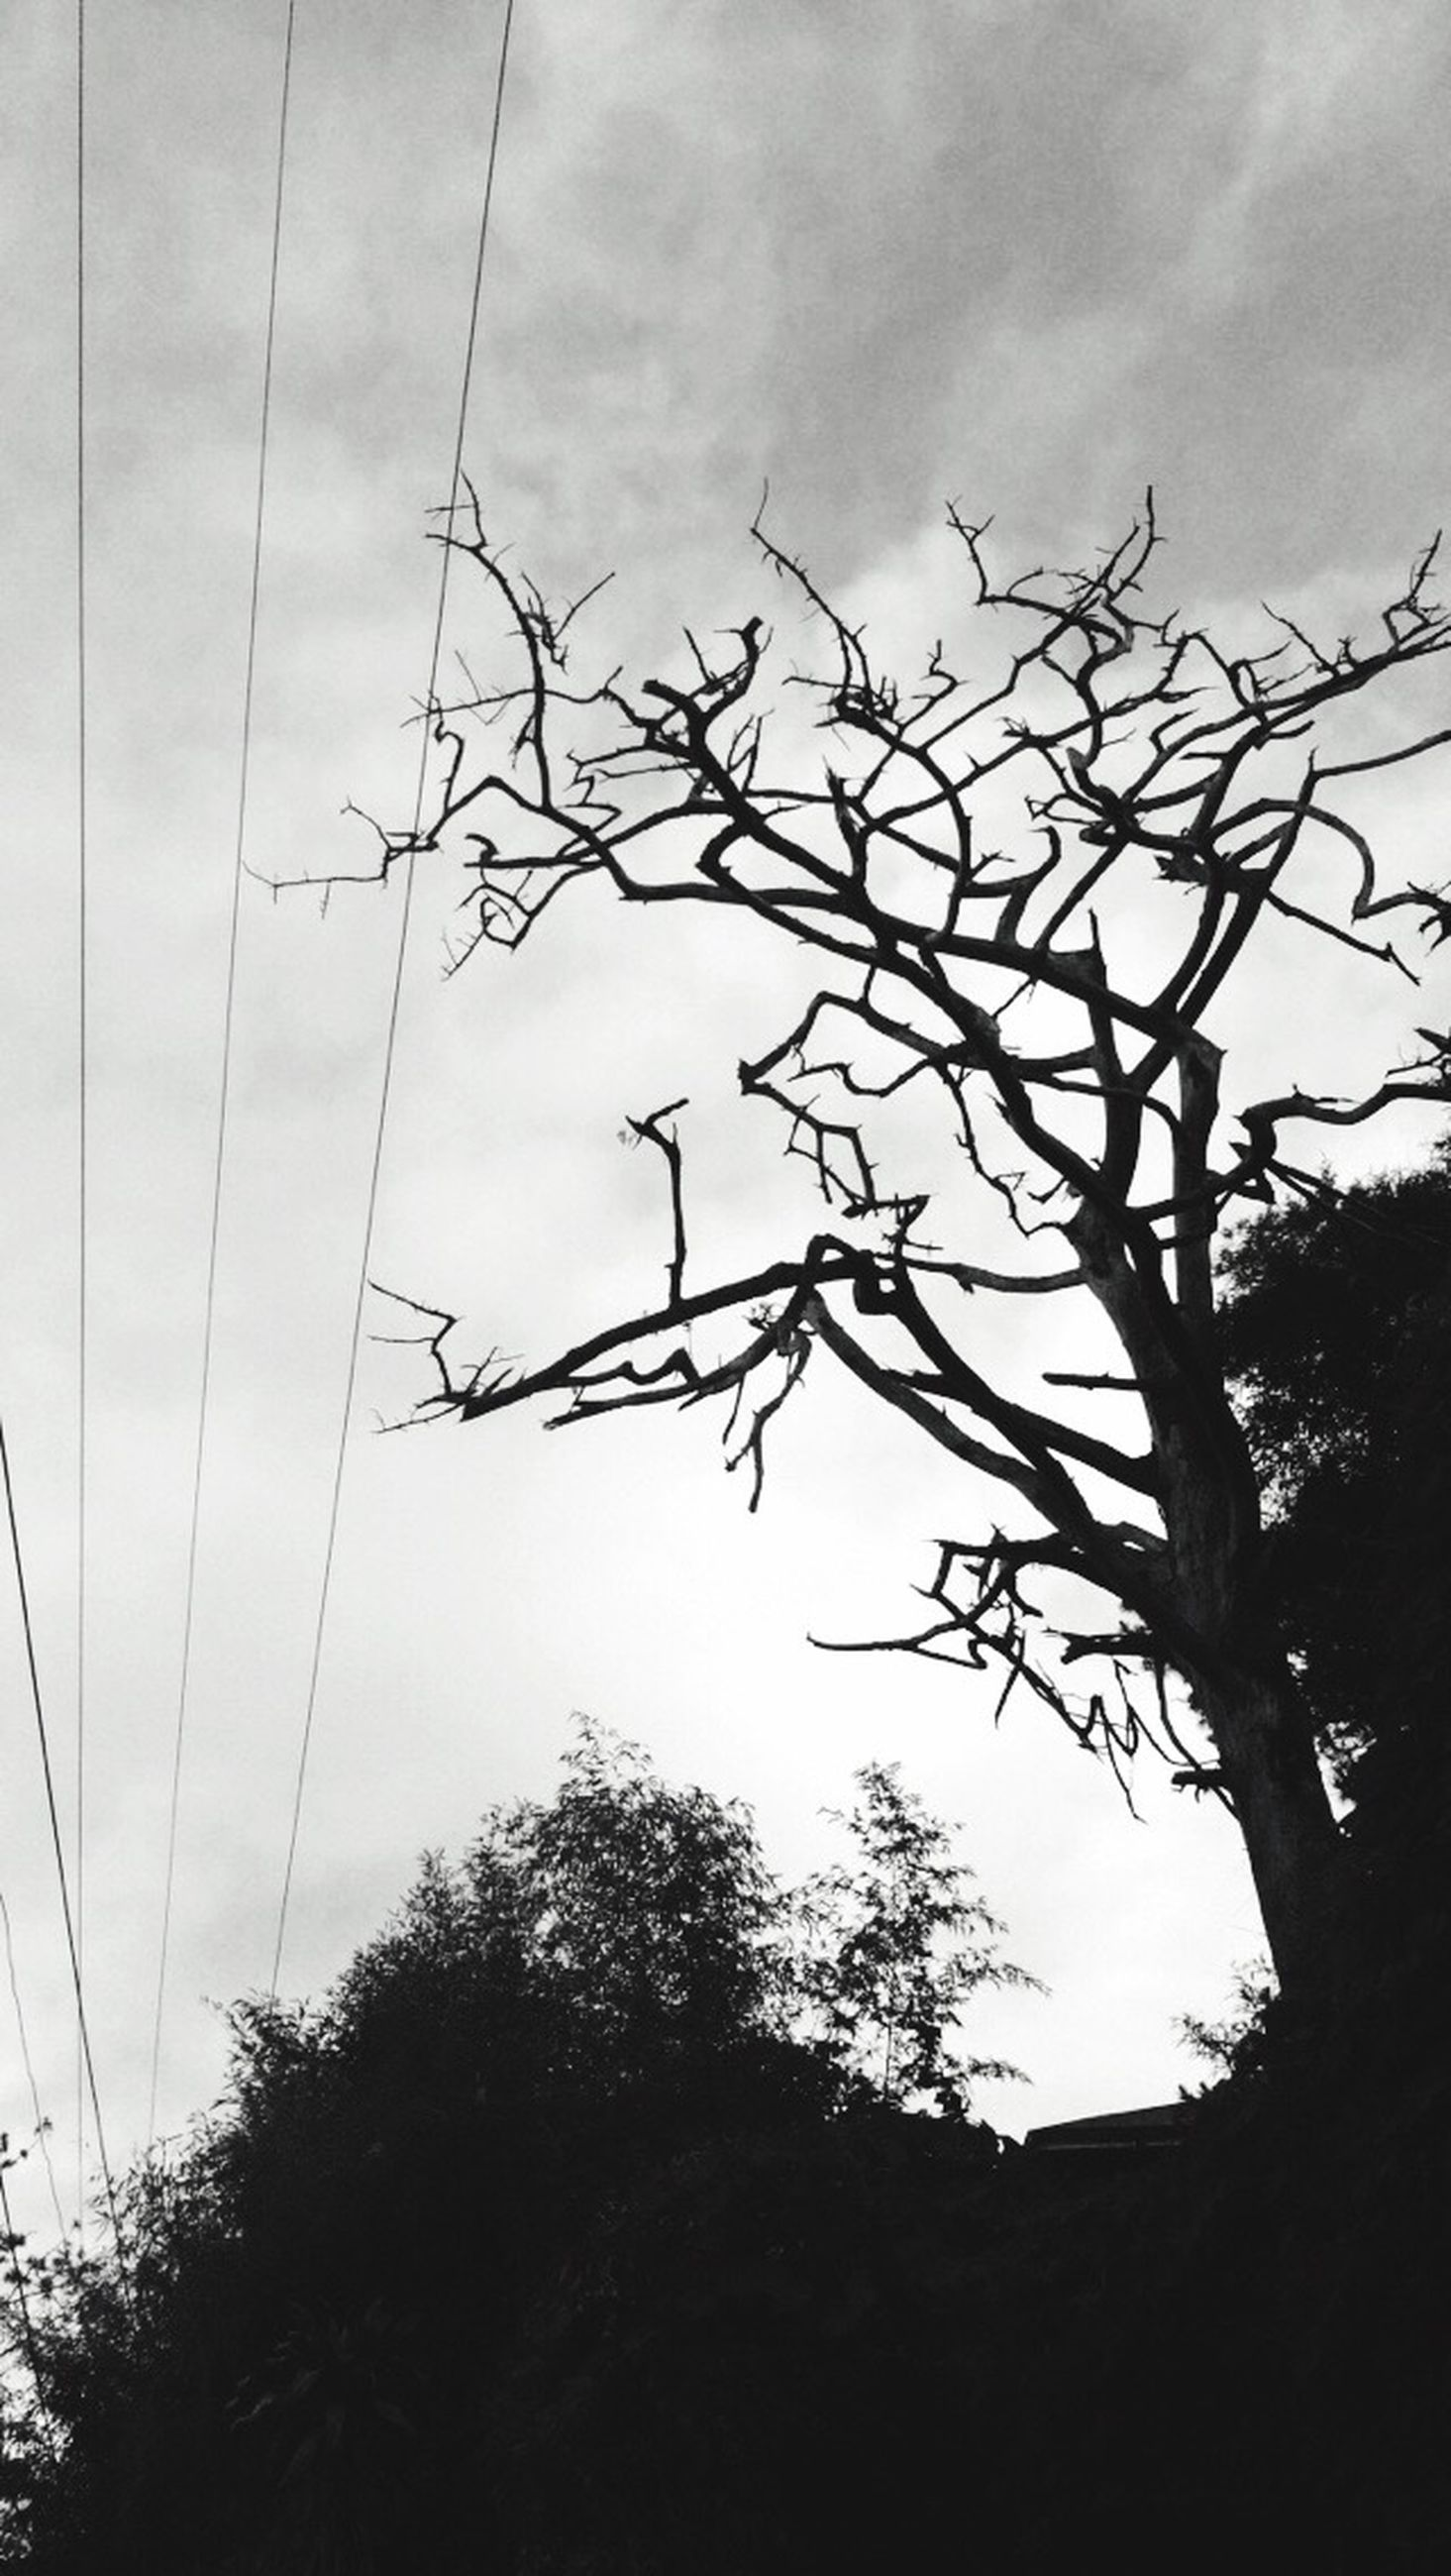 sky, low angle view, silhouette, tree, bare tree, cloud - sky, branch, cloudy, tranquility, cloud, nature, power line, beauty in nature, outdoors, tranquil scene, tree trunk, scenics, growth, no people, dusk